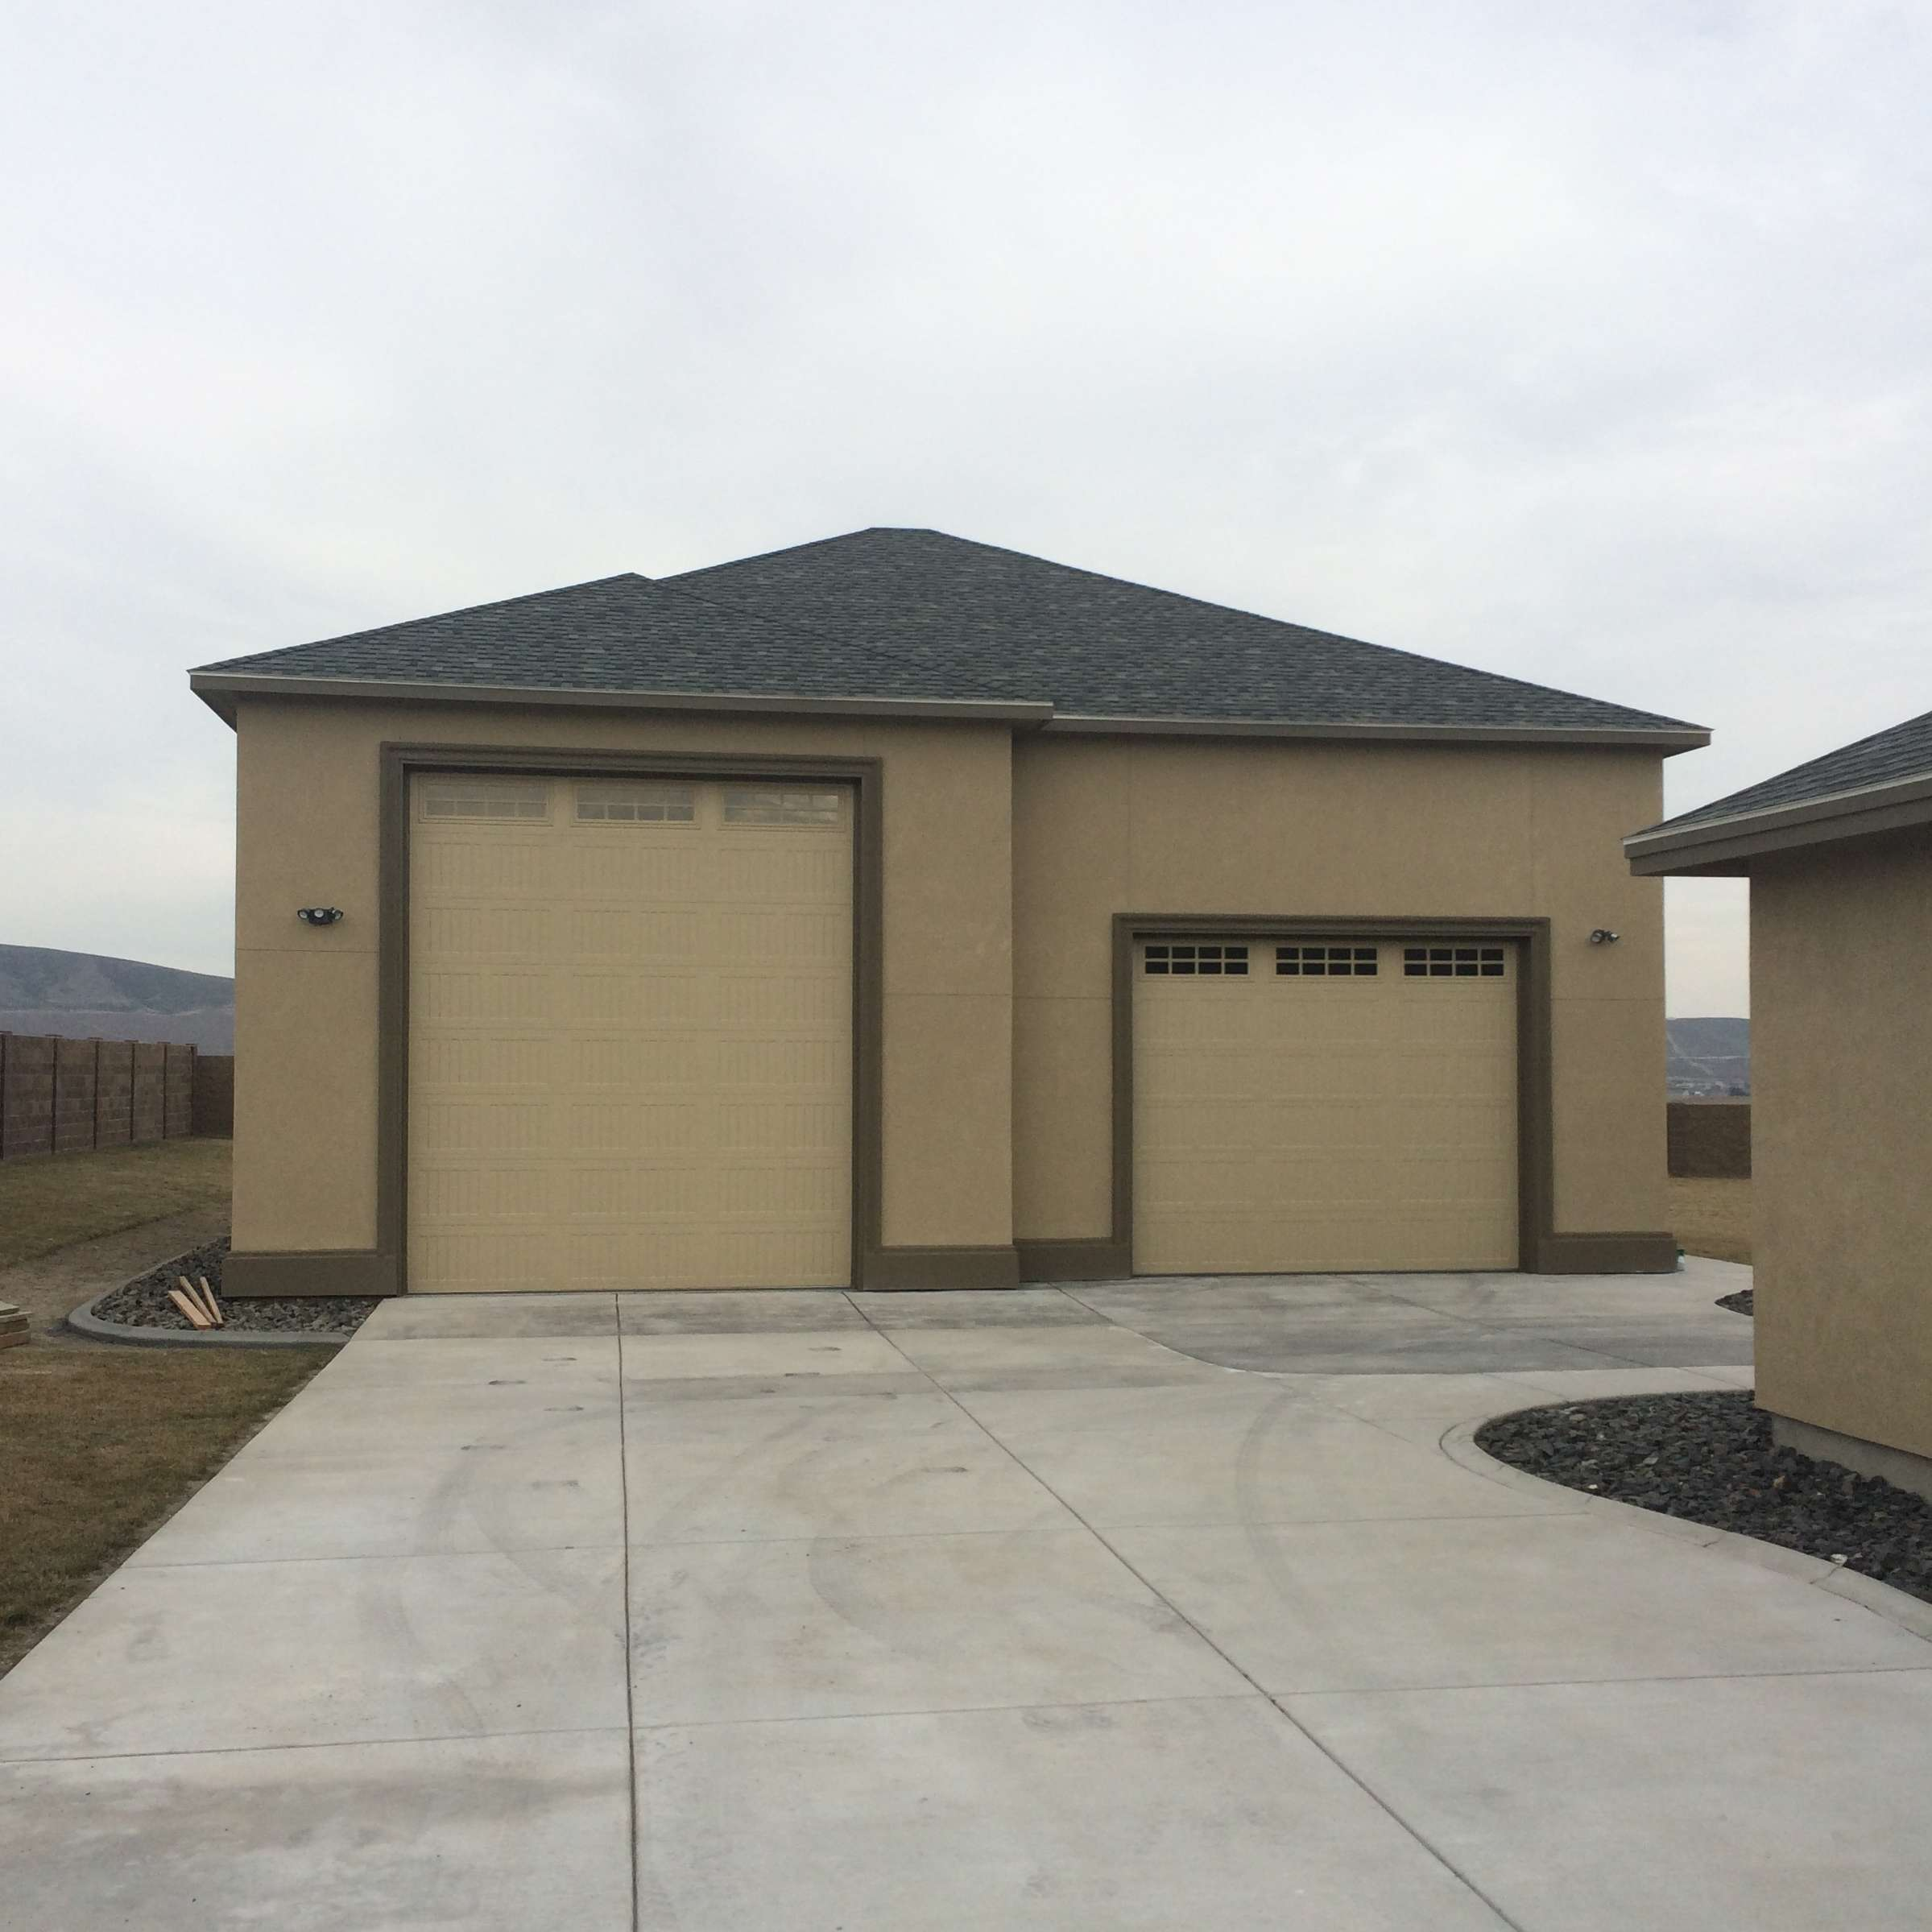 General Contractor Custom Home Builder Remodeling Additions Kennewick Tri Cities Wa Saddle Mountain Homes